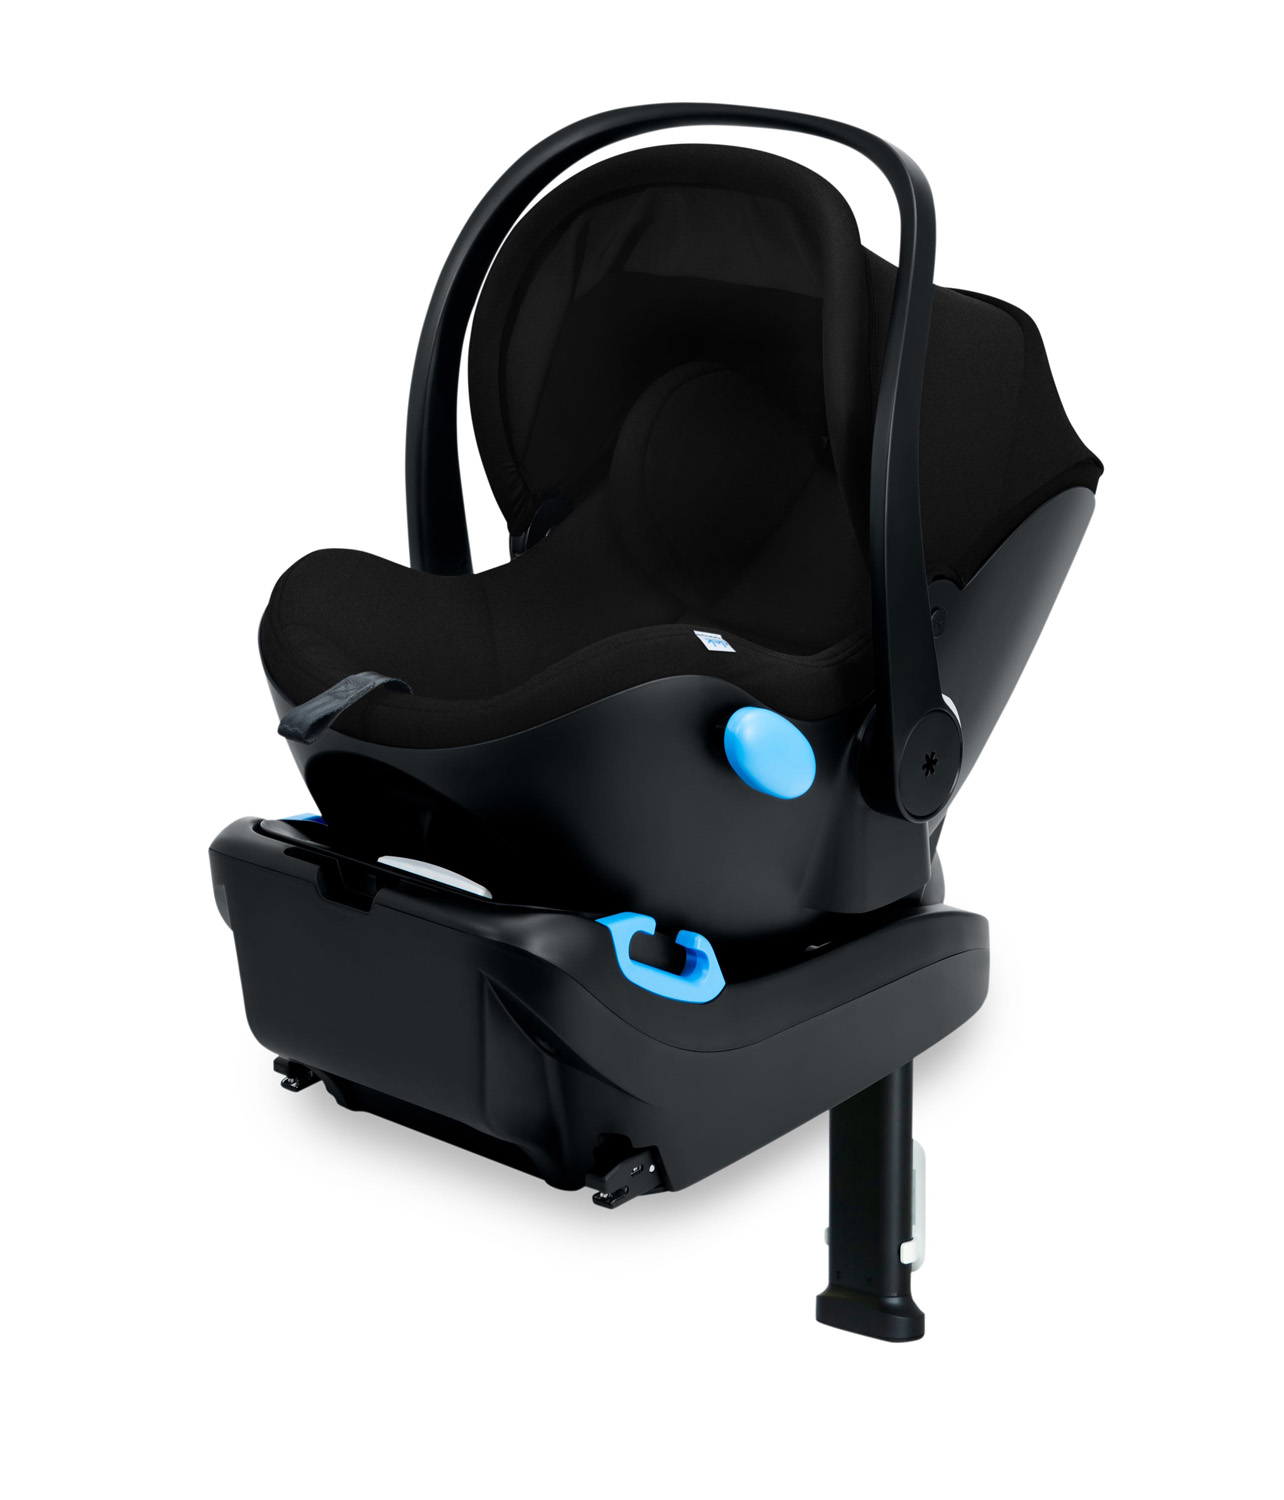 Clek 2020 Liing Infant Car Seat - Pitch Black